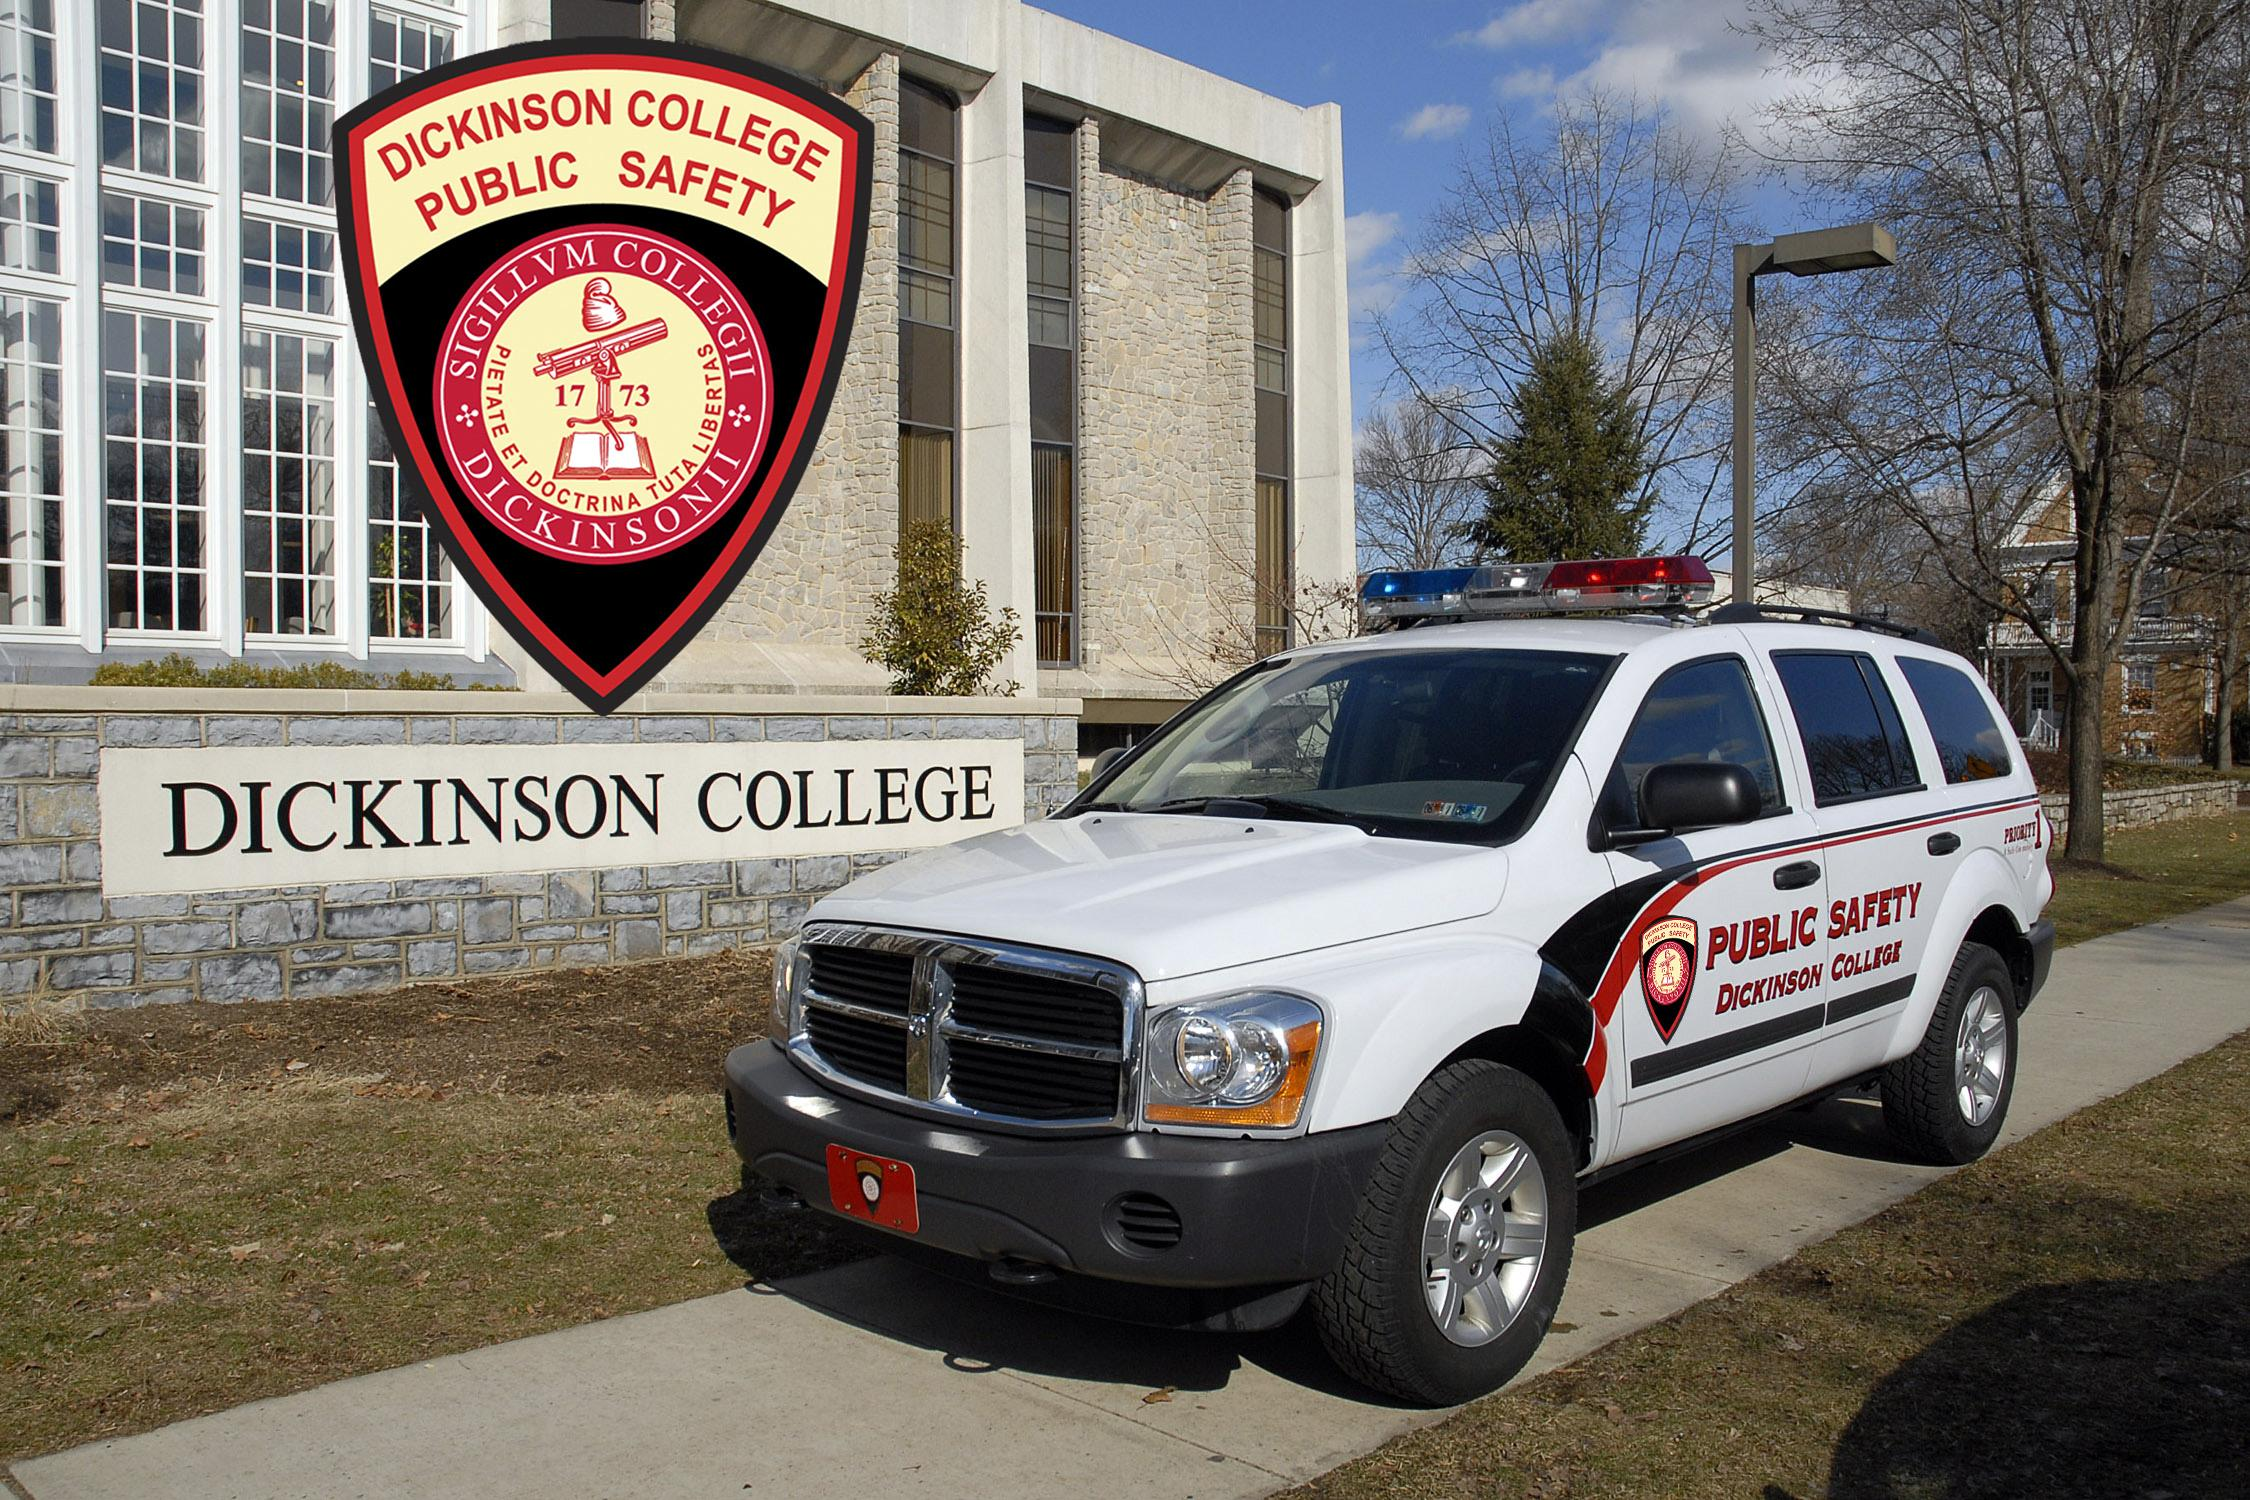 Photograph of a Public Safety vehicle out front the library